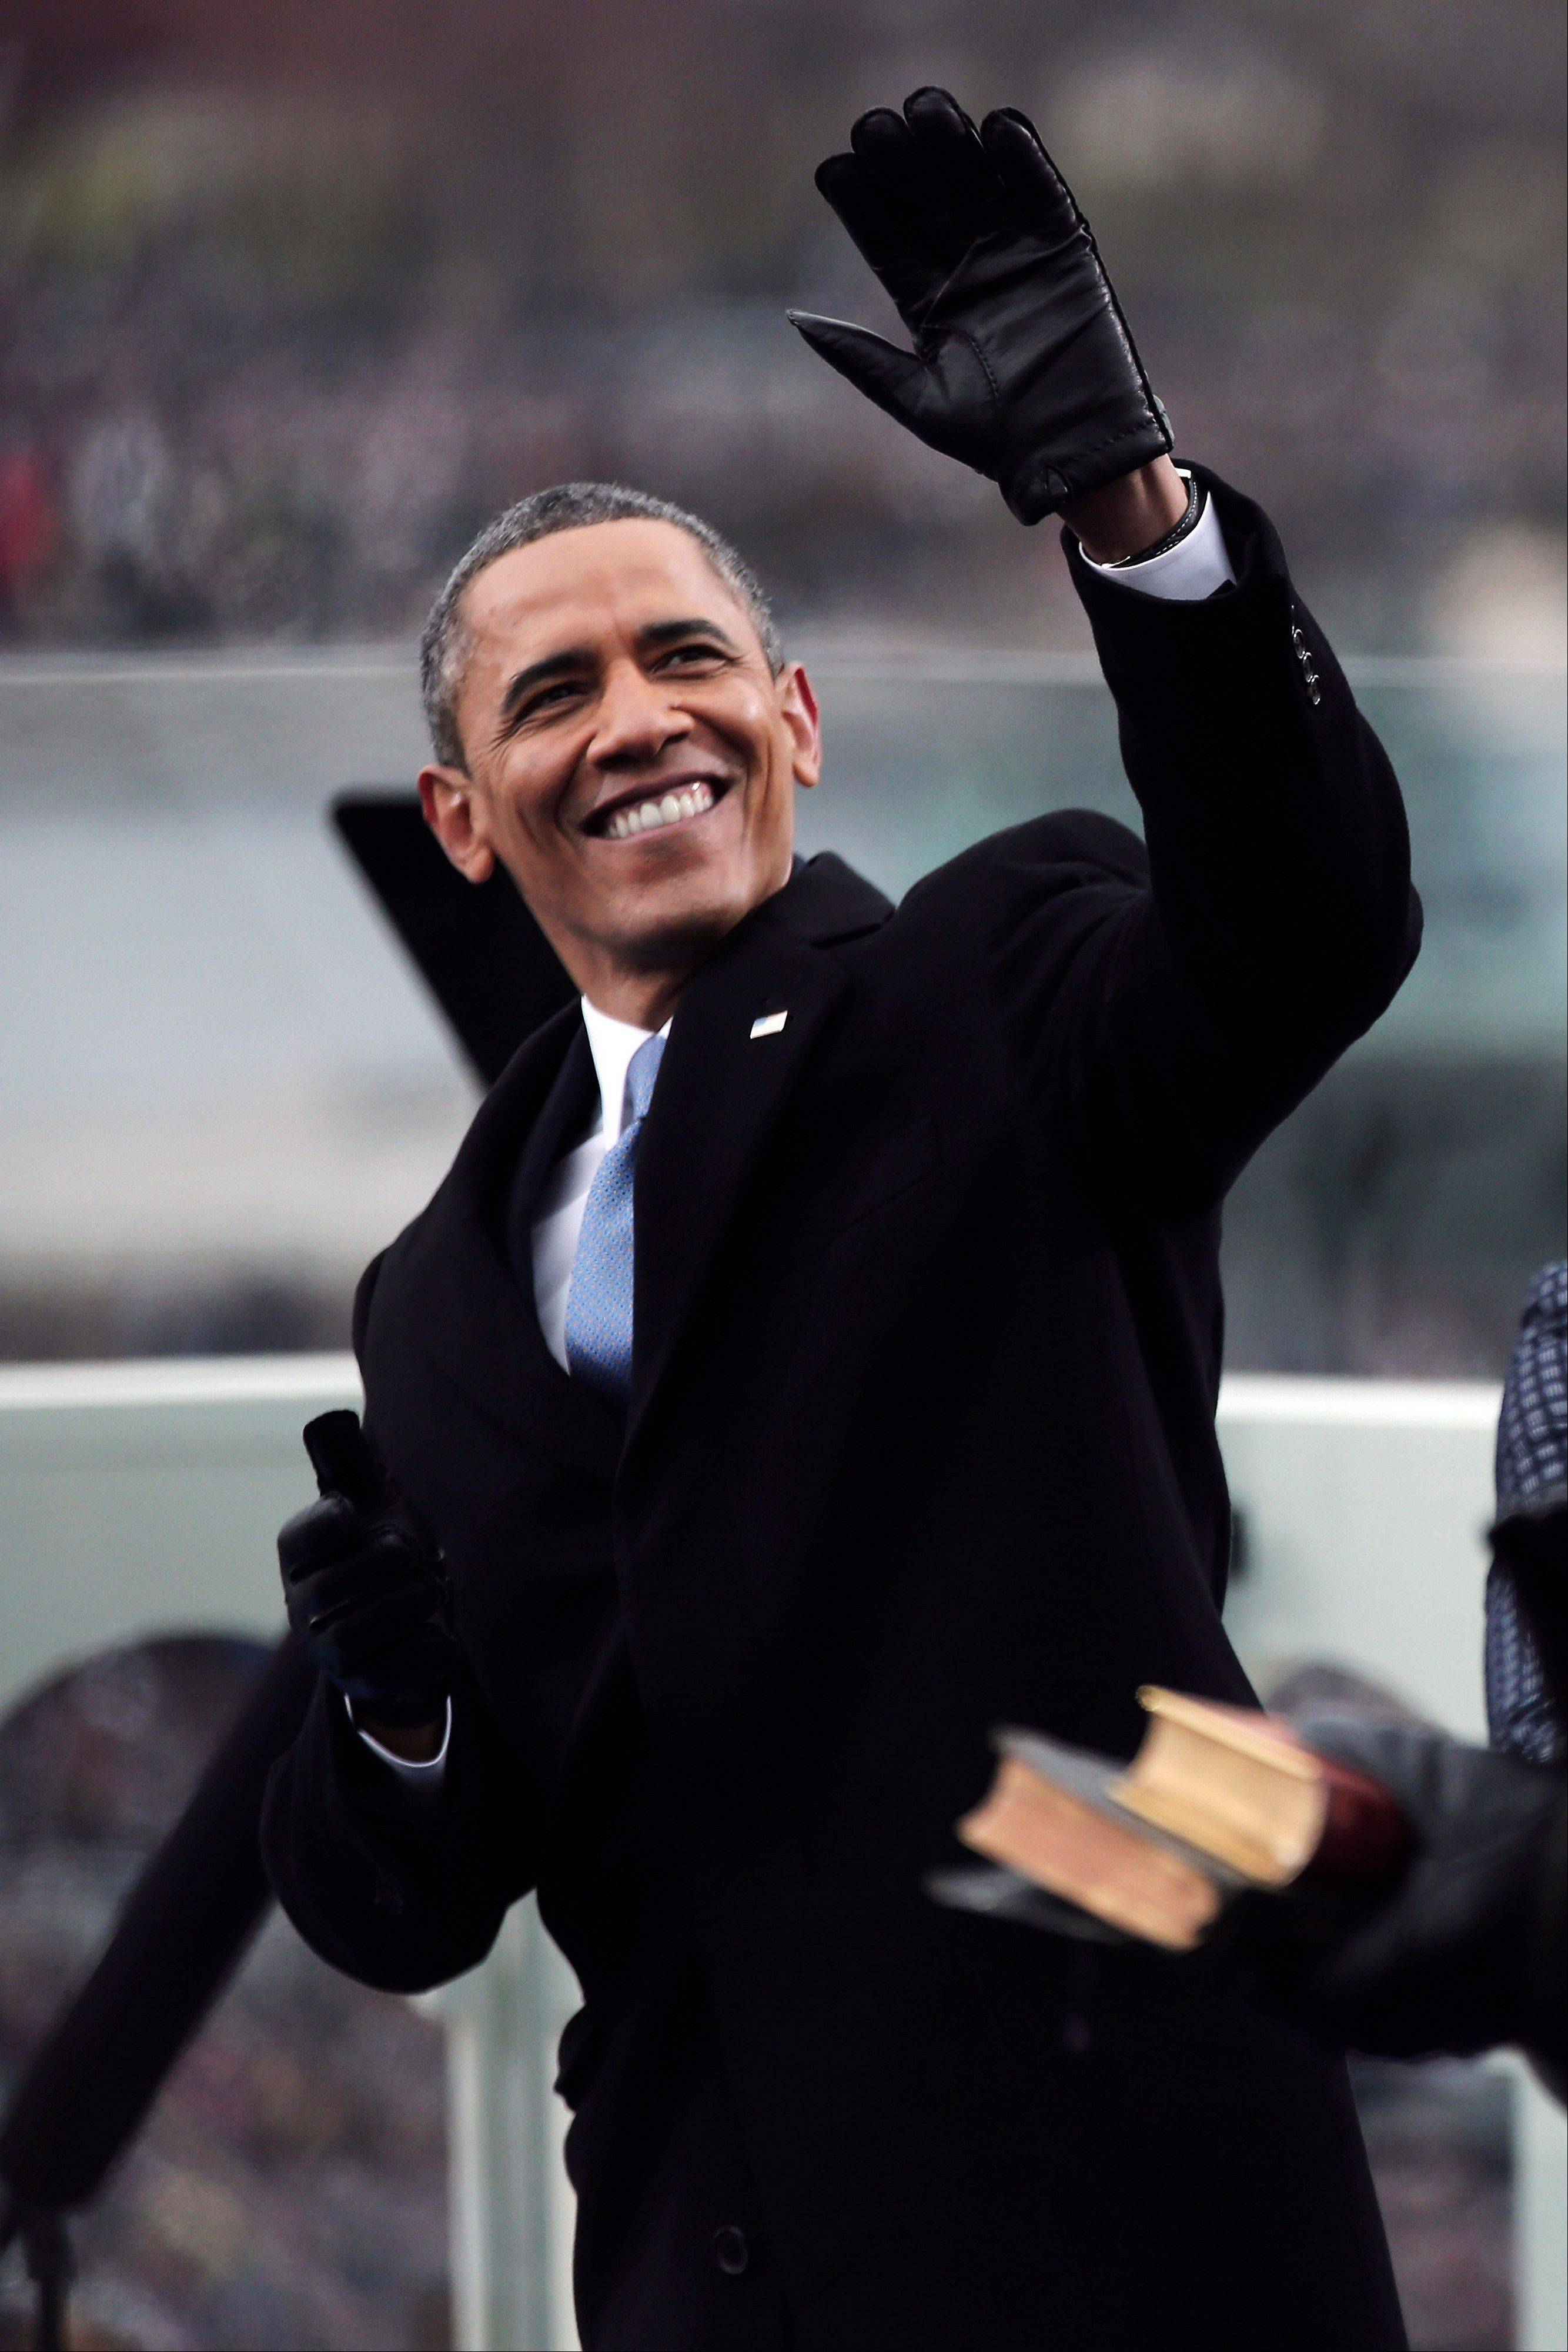 President Barack Obama' waves on the West Front of the Capitol in Washington, Monday, Jan. 21, 2013, prior to his ceremonial swearing-in ceremony during the 57th Presidential Inauguration.